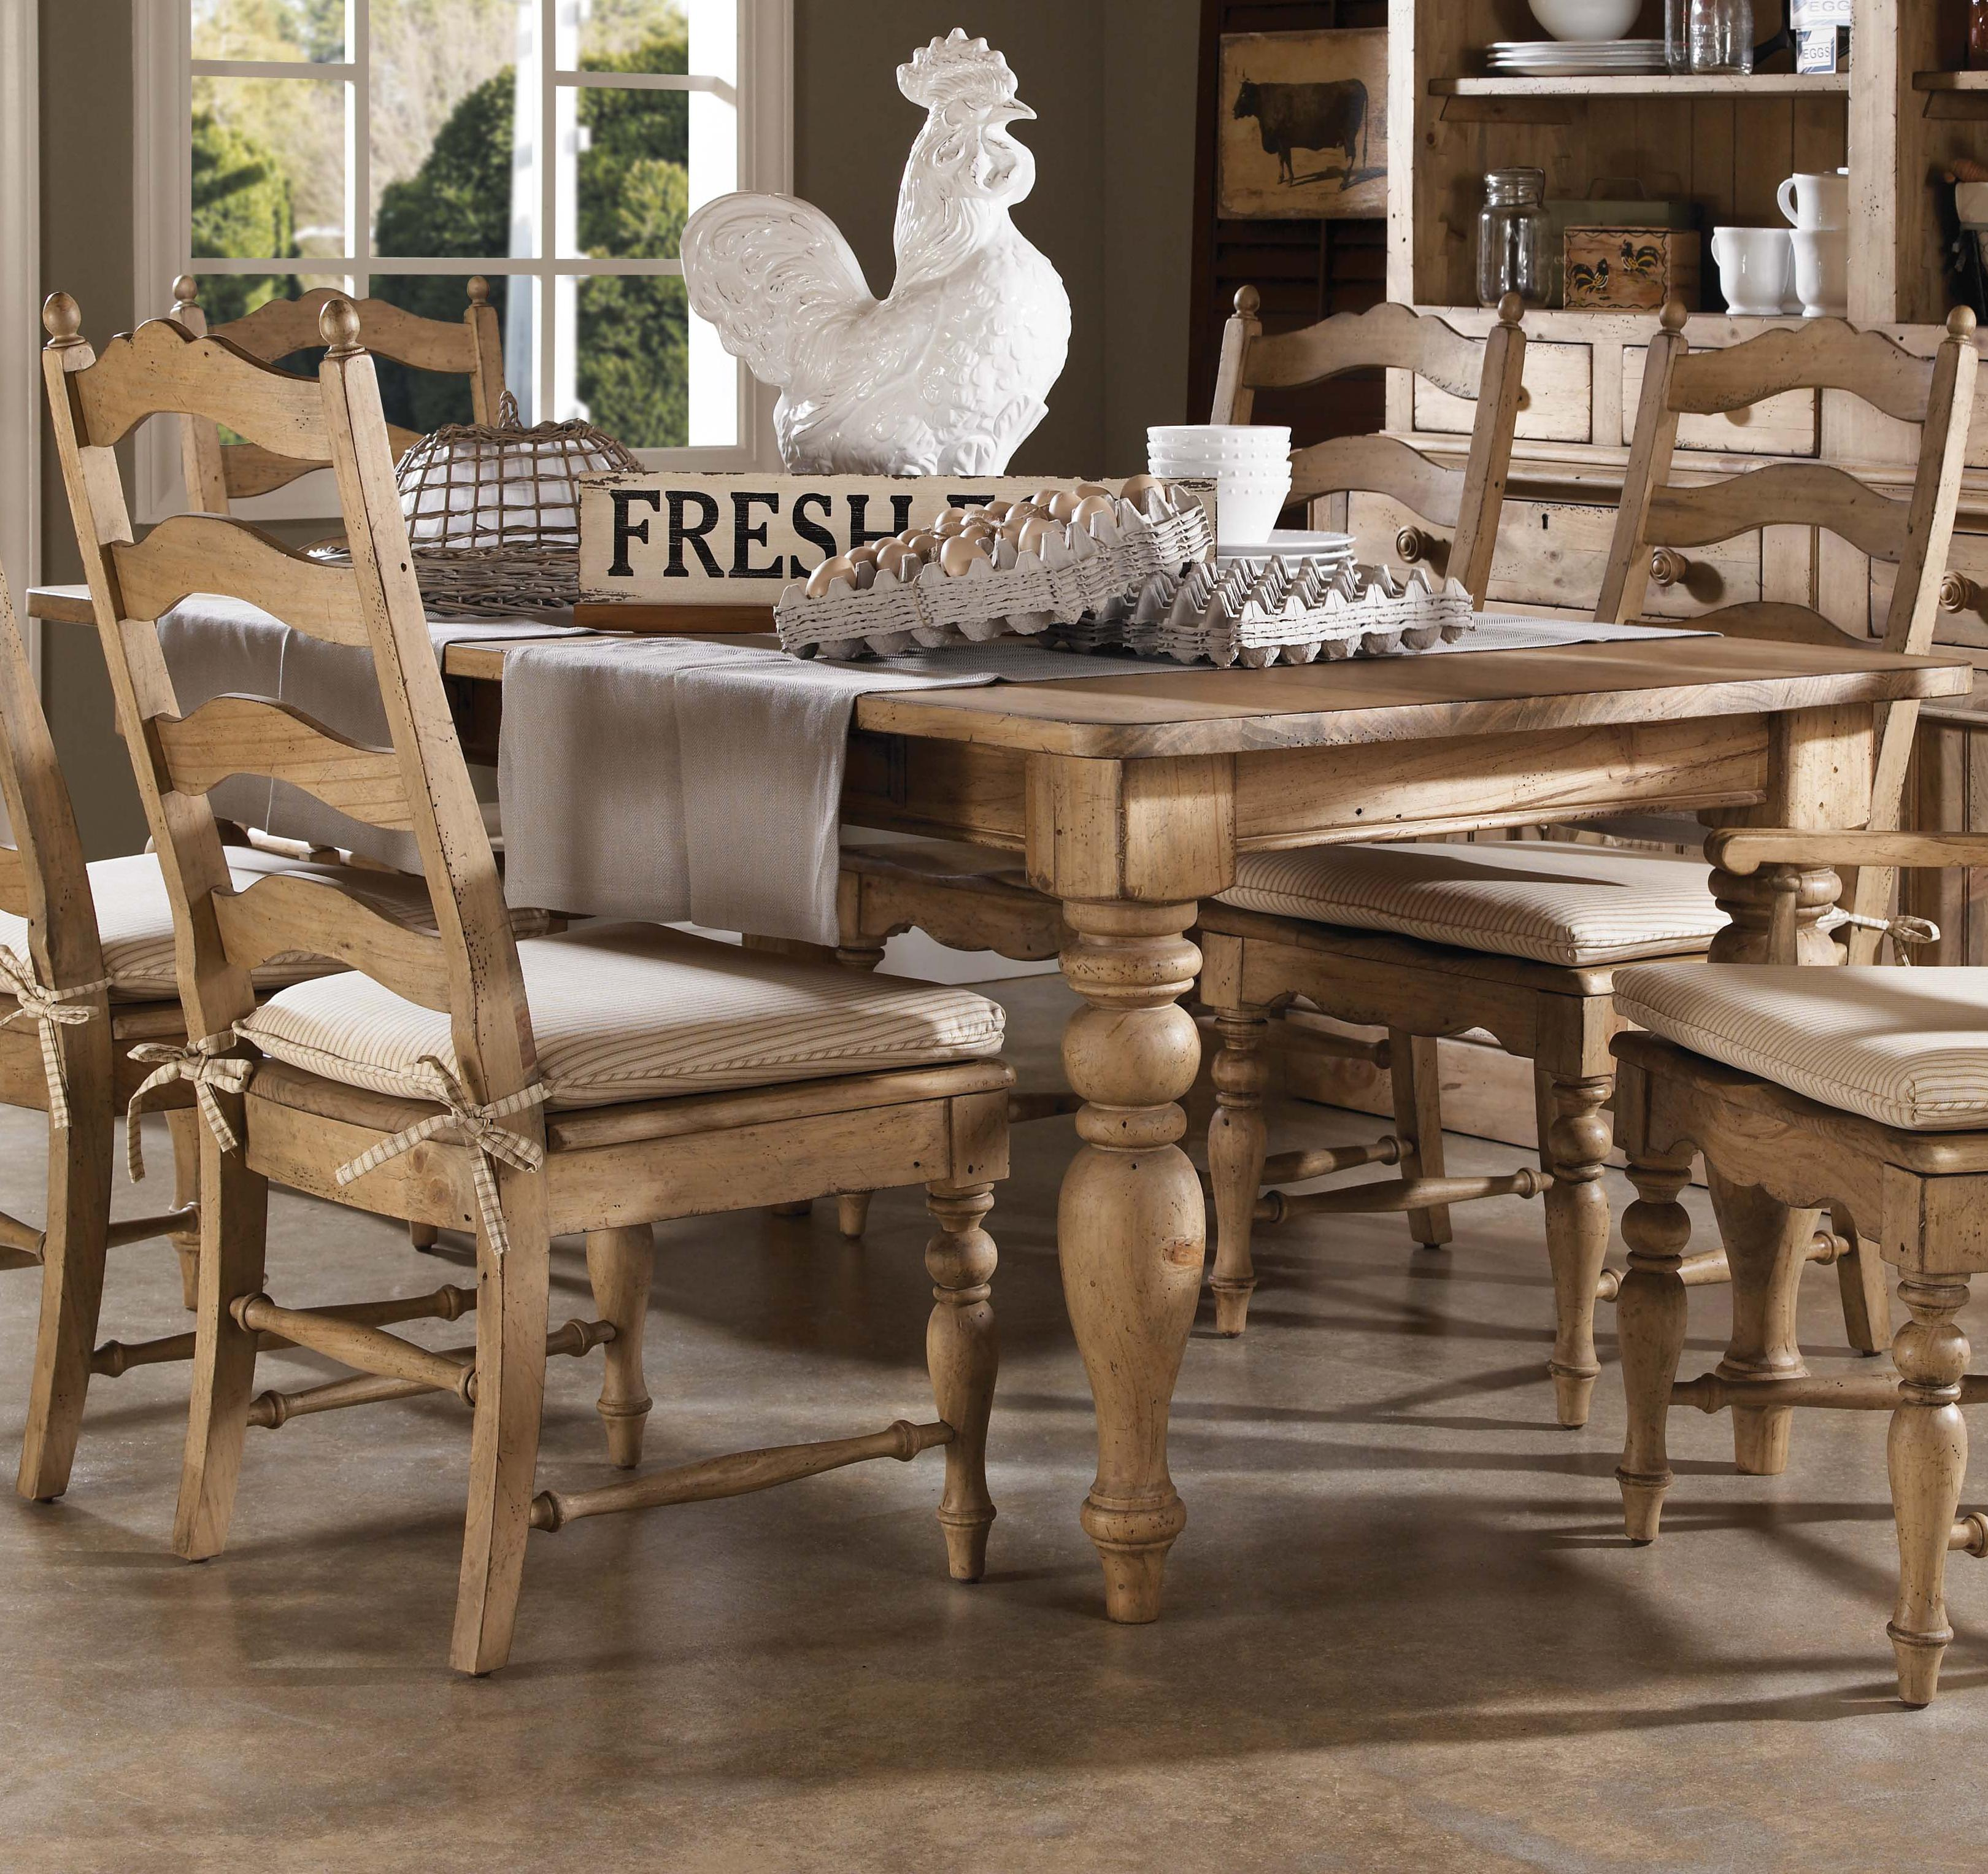 Kincaid Dining Room Furniture 7 Piece Dining Set With Farmhouse Leg Table And Ladderback